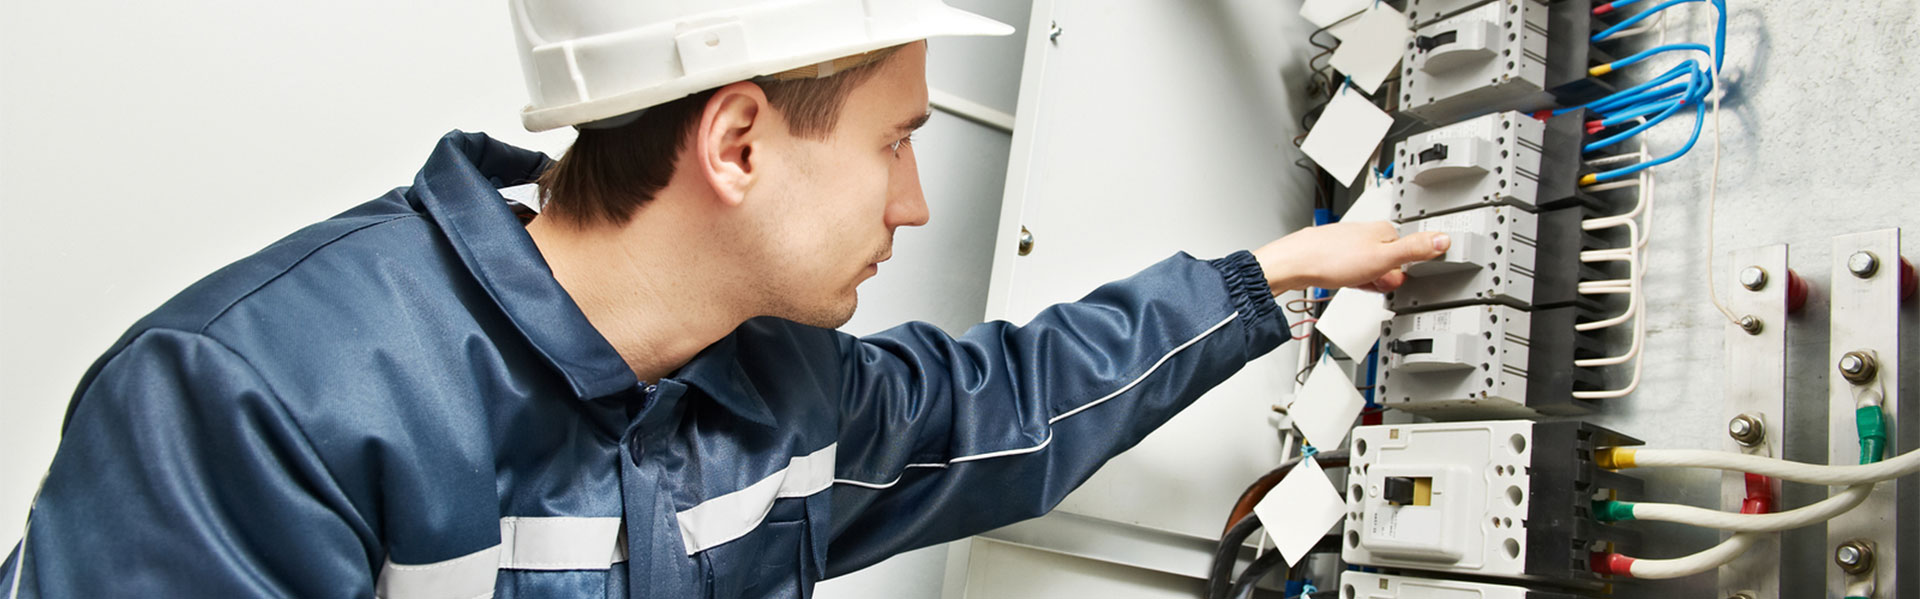 kansas city electrical services and inspections